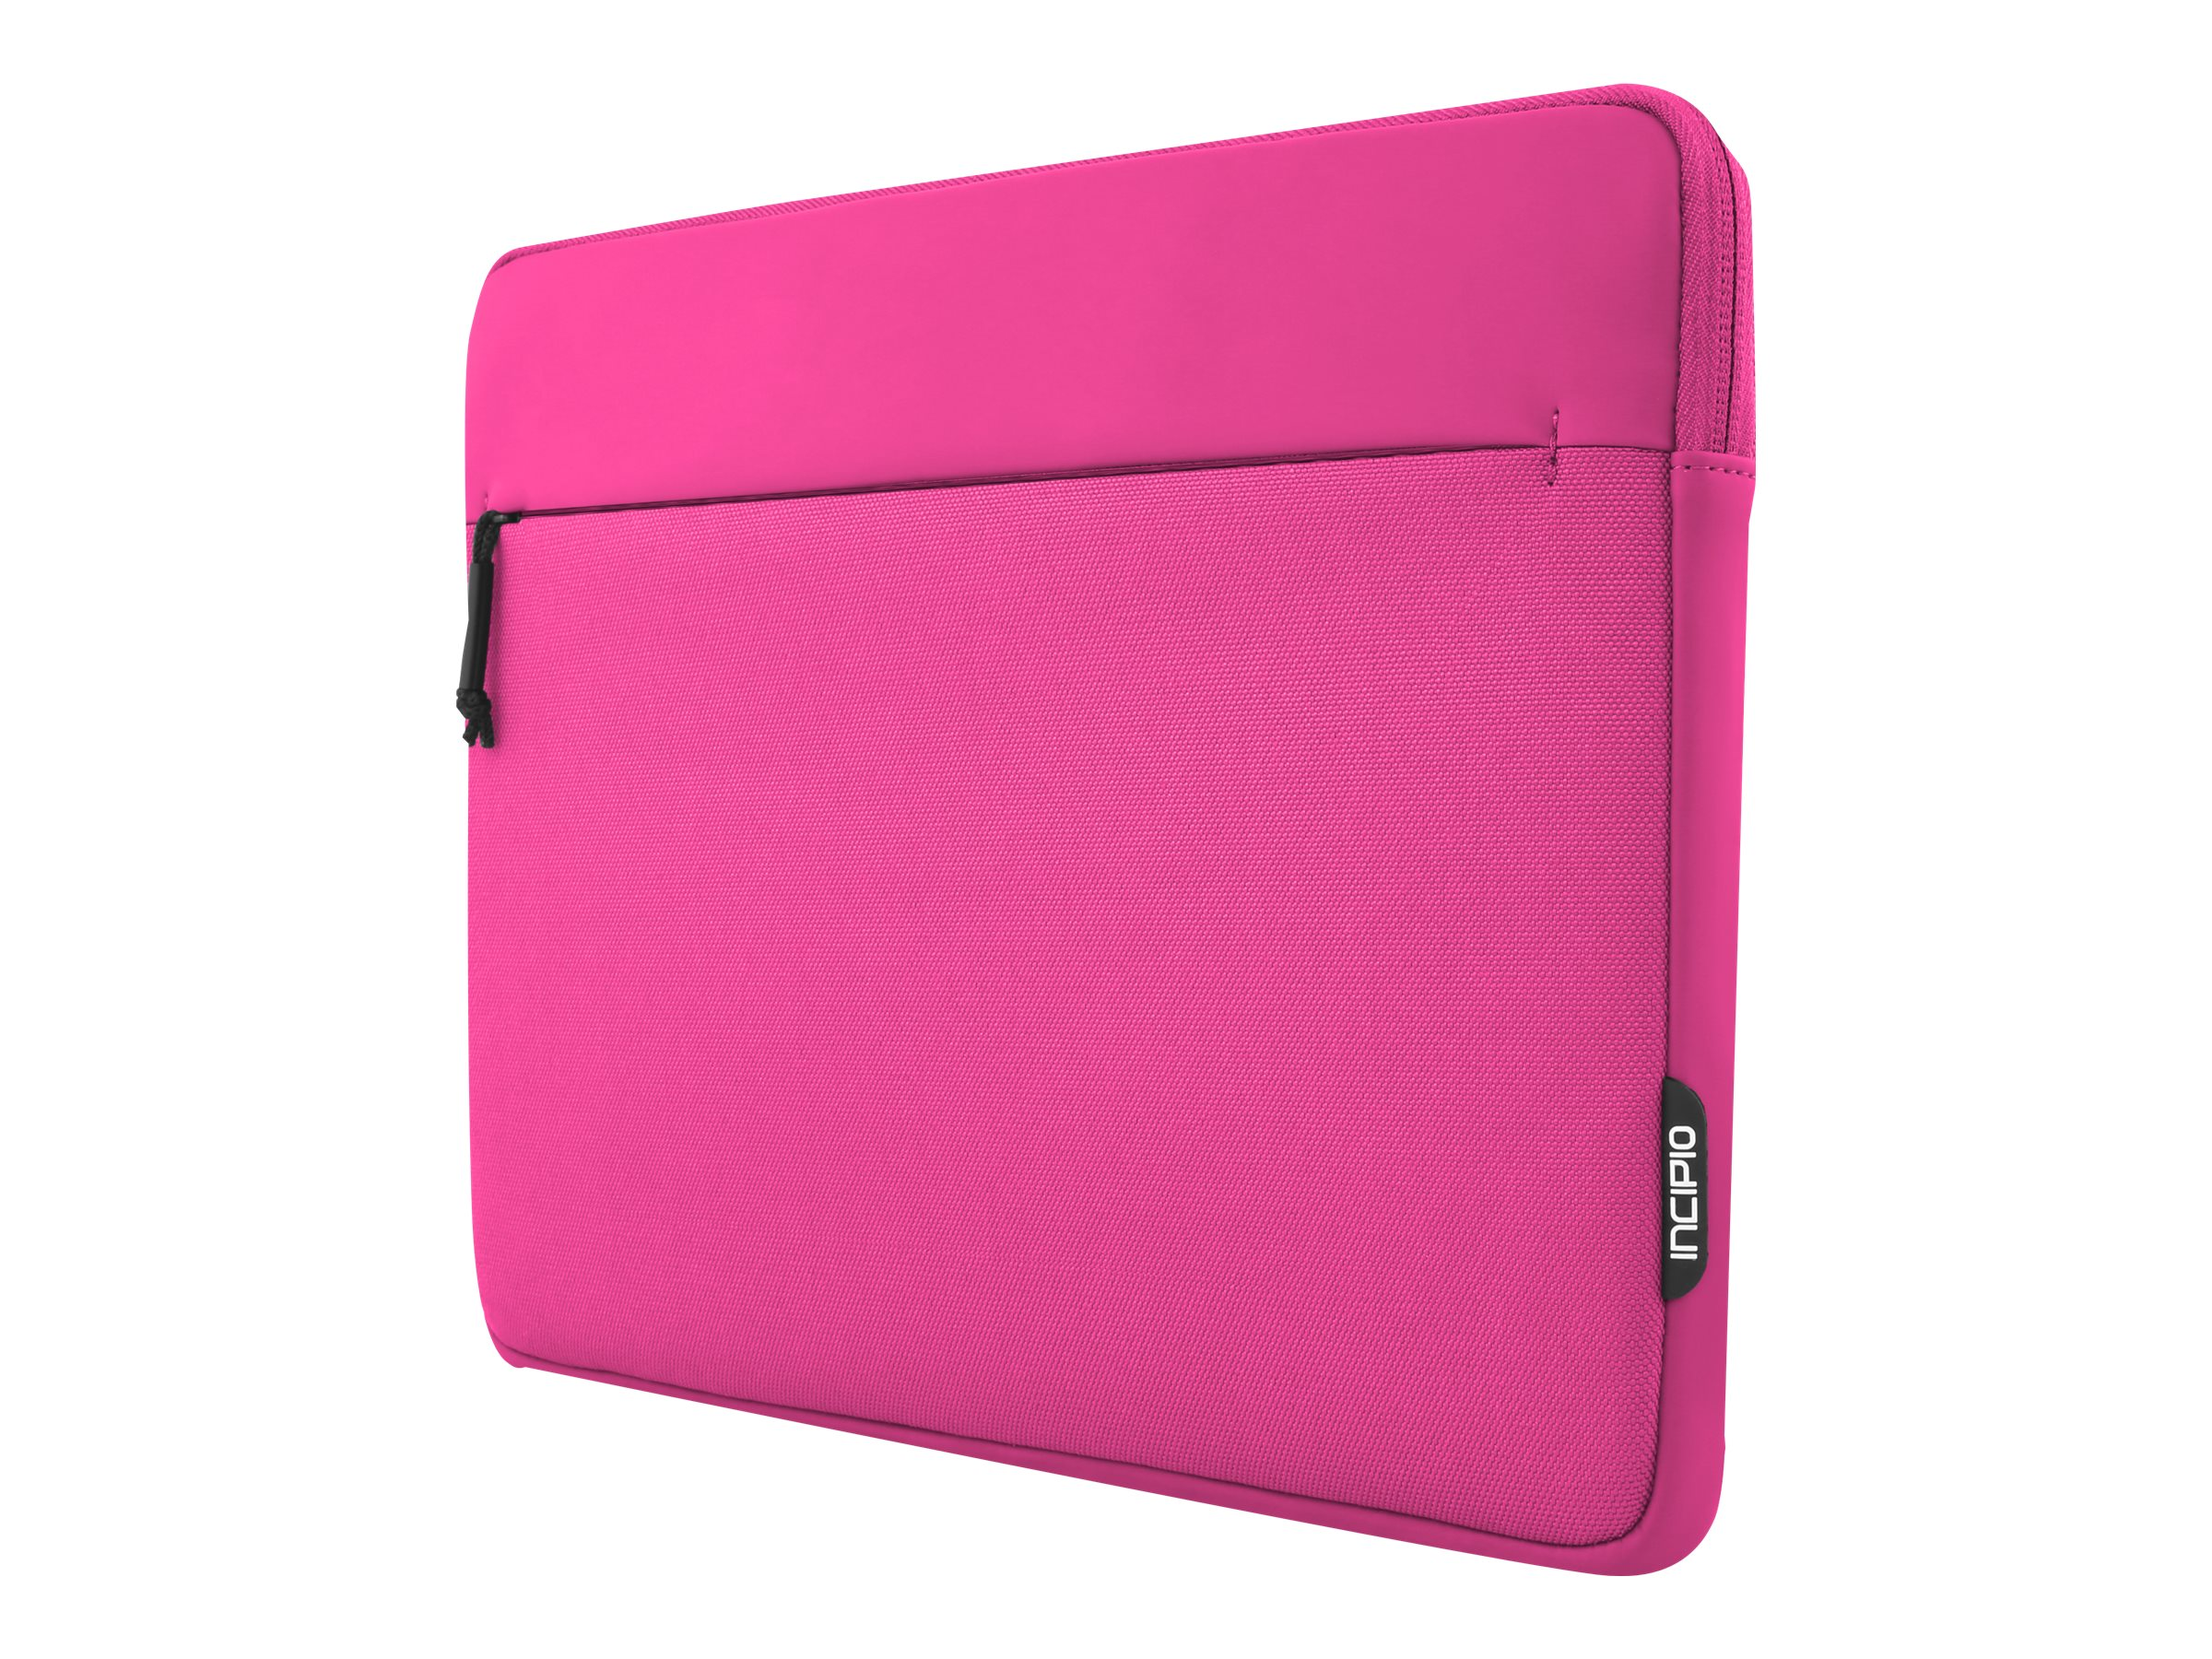 Incipio Truman Protective Padded Sleeve for iPad Pro 12.9, Pink